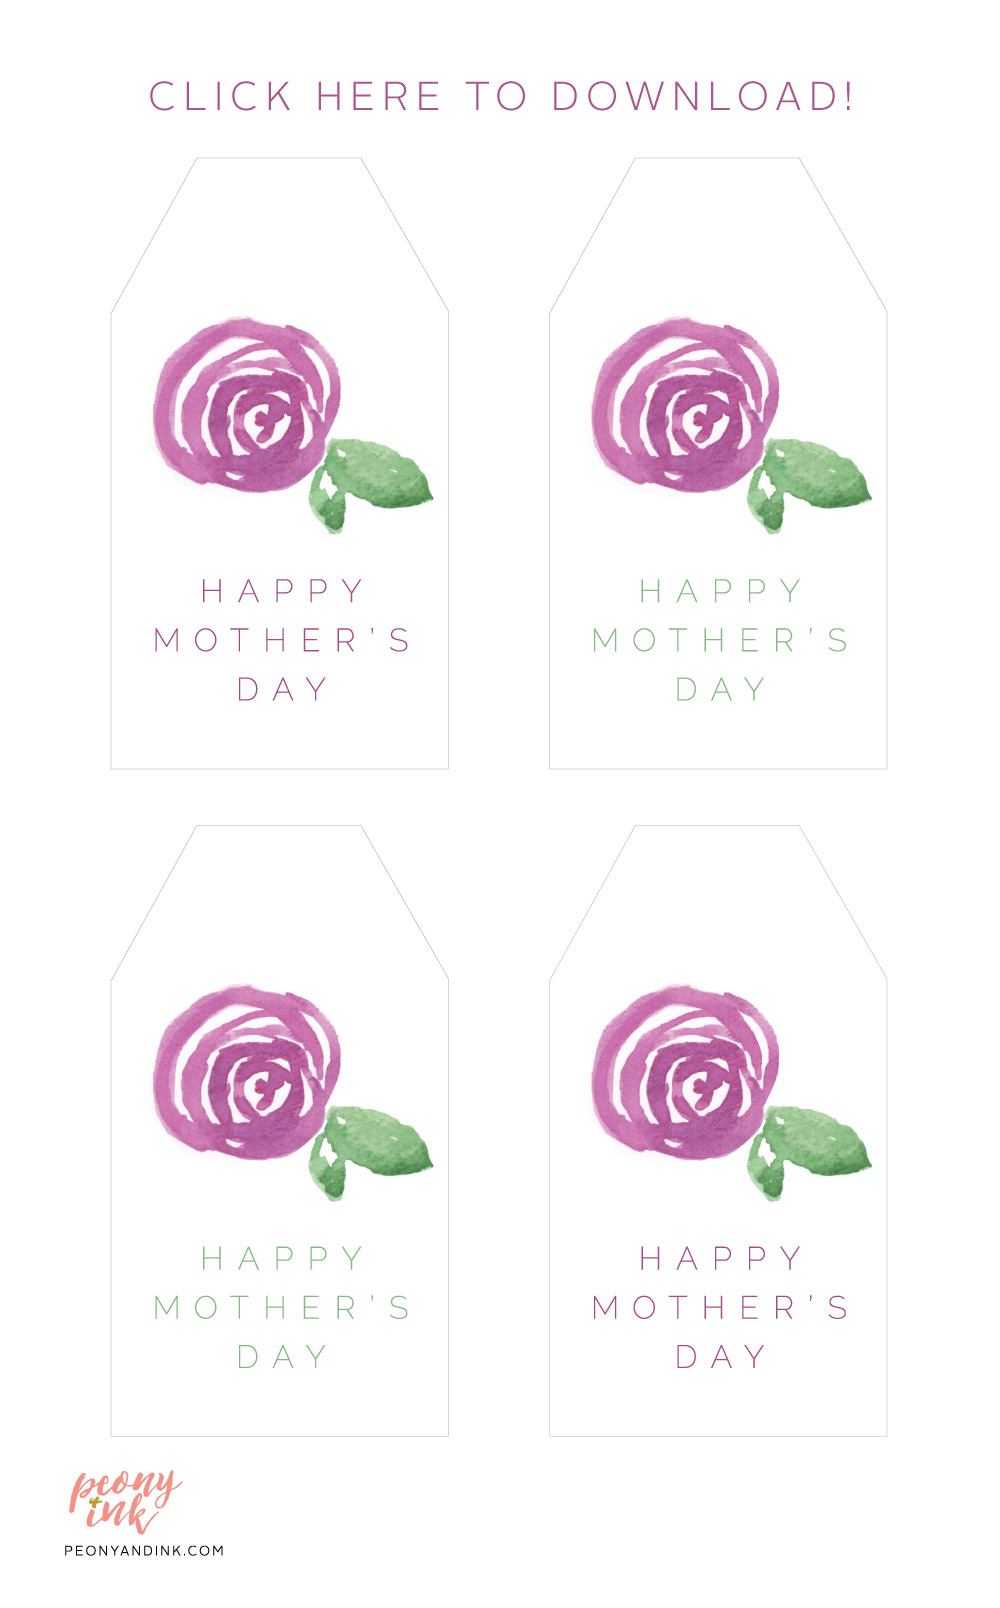 photo regarding Free Printable Mothers Day Tags called Cost-free Down load: Printable Moms Working day Reward Tags Peony + Ink